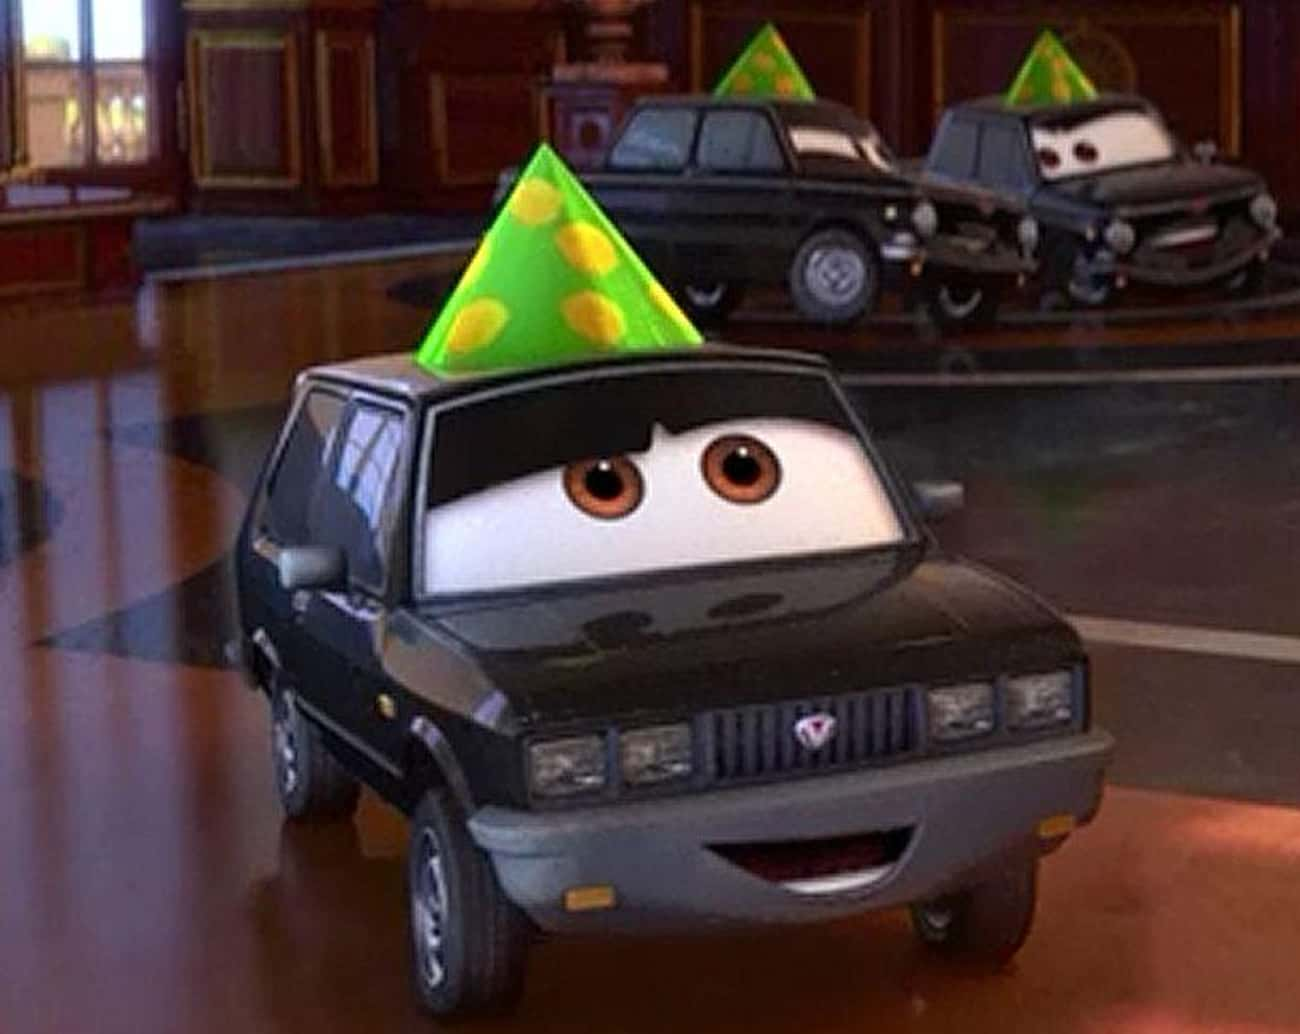 Cars 2 - Lemon Party is listed (or ranked) 4 on the list Off-Color Jokes For Grown-Ups That Kids Never Noticed In Pixar Movies